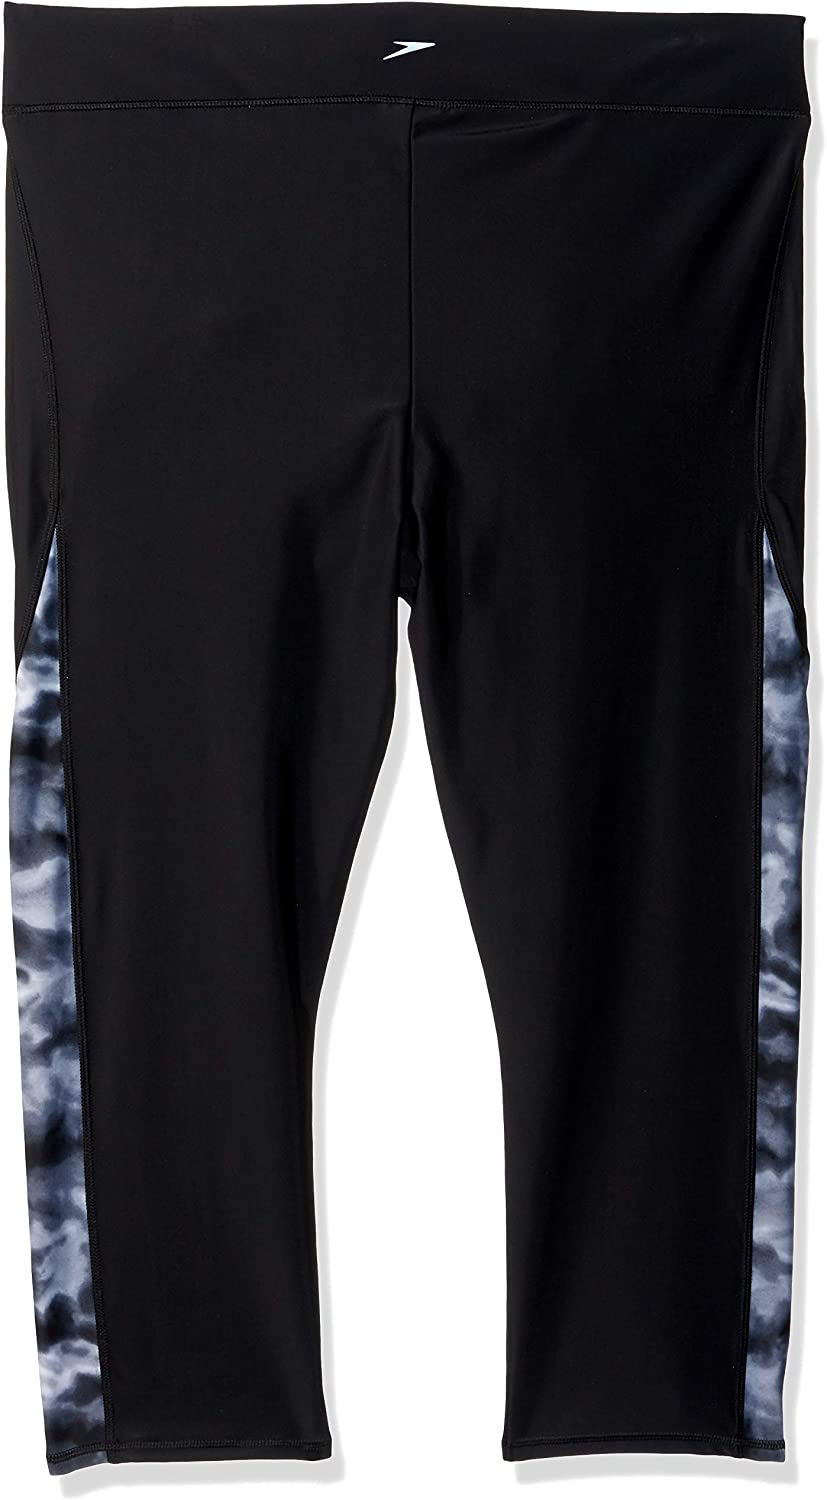 Speedo Womens Paddle Pants